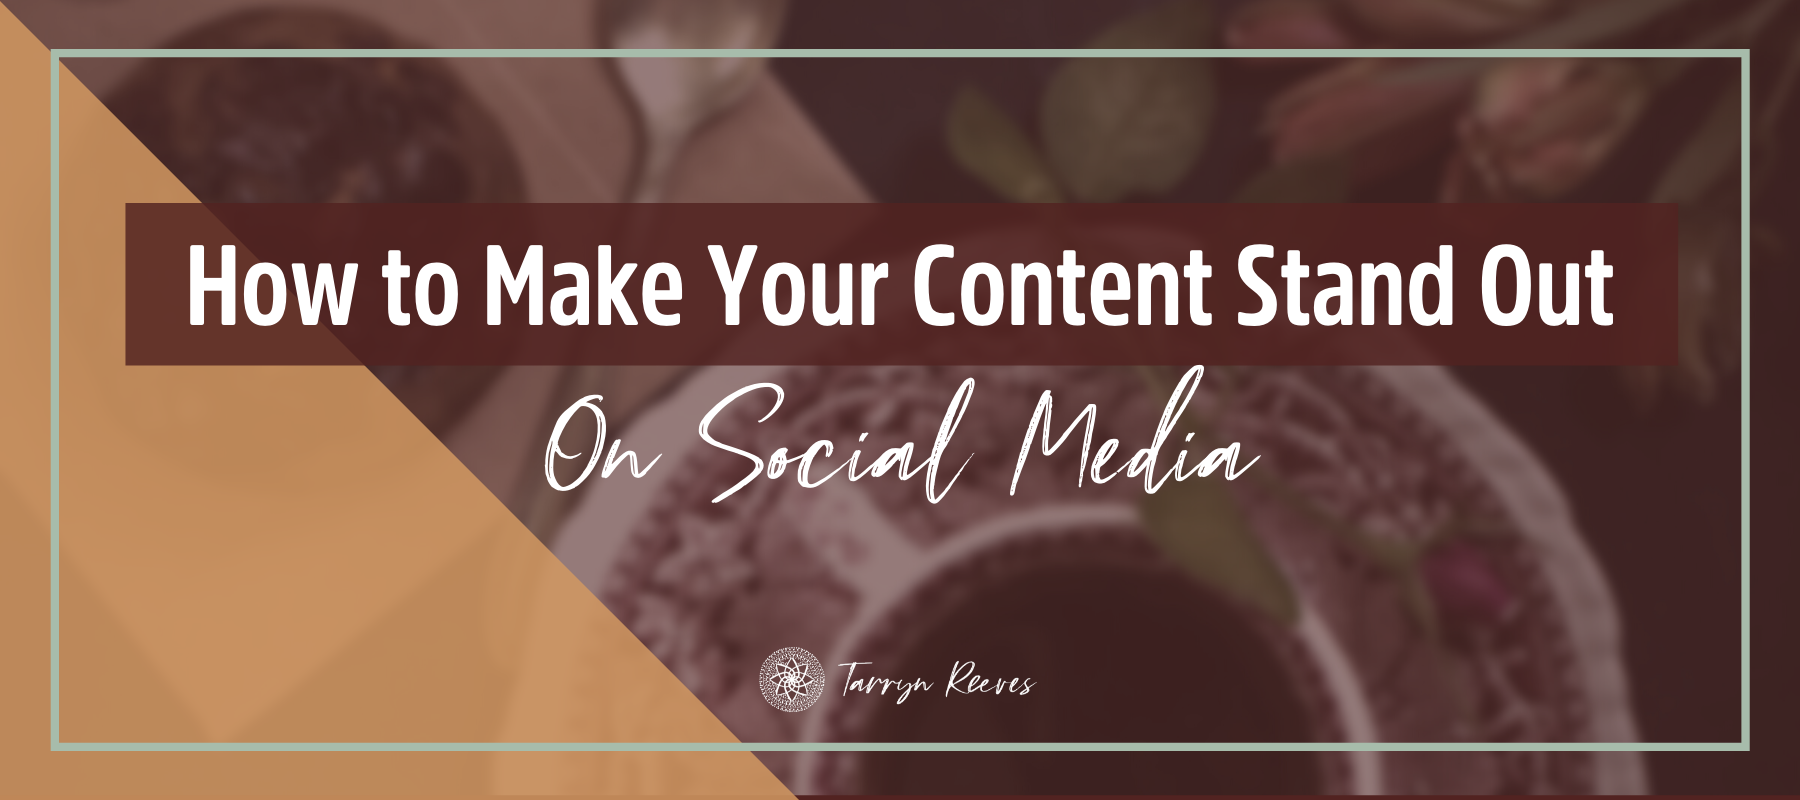 How To Make Your Content Stand Out On Social Media